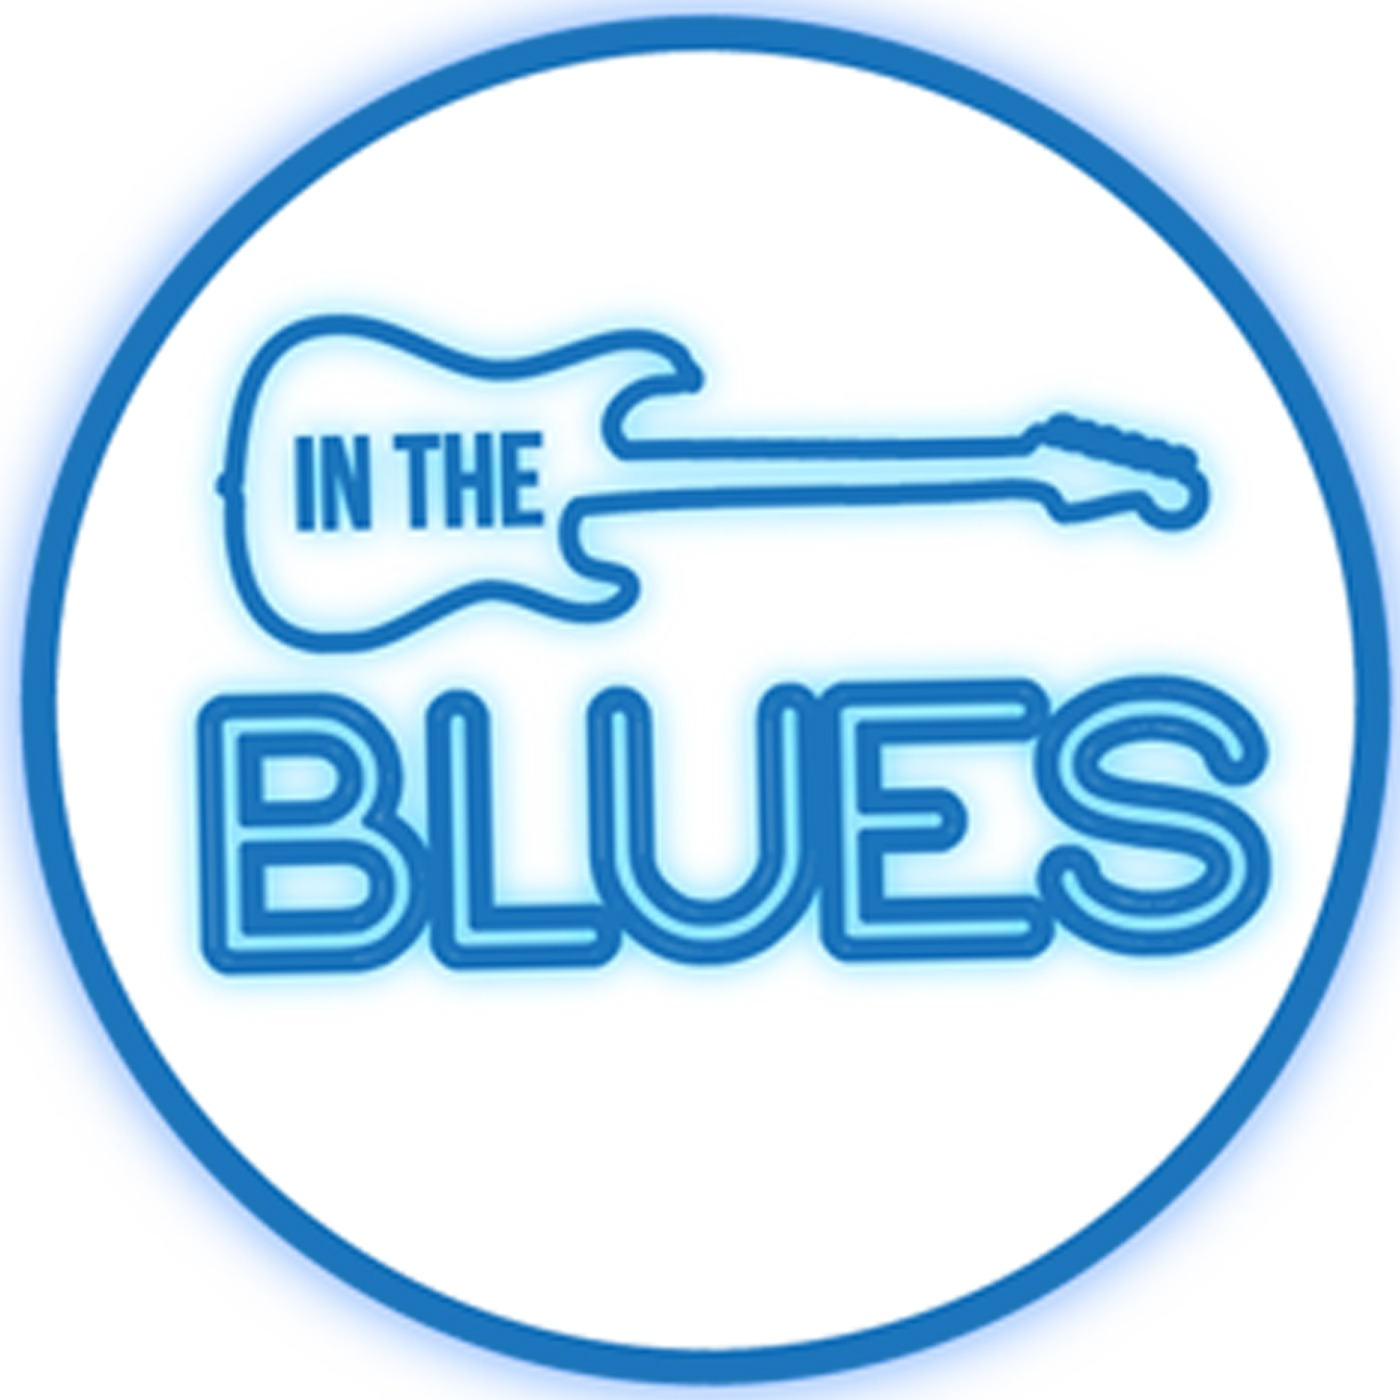 INTHEBLUES Tone Podcast Feb 16, 2016